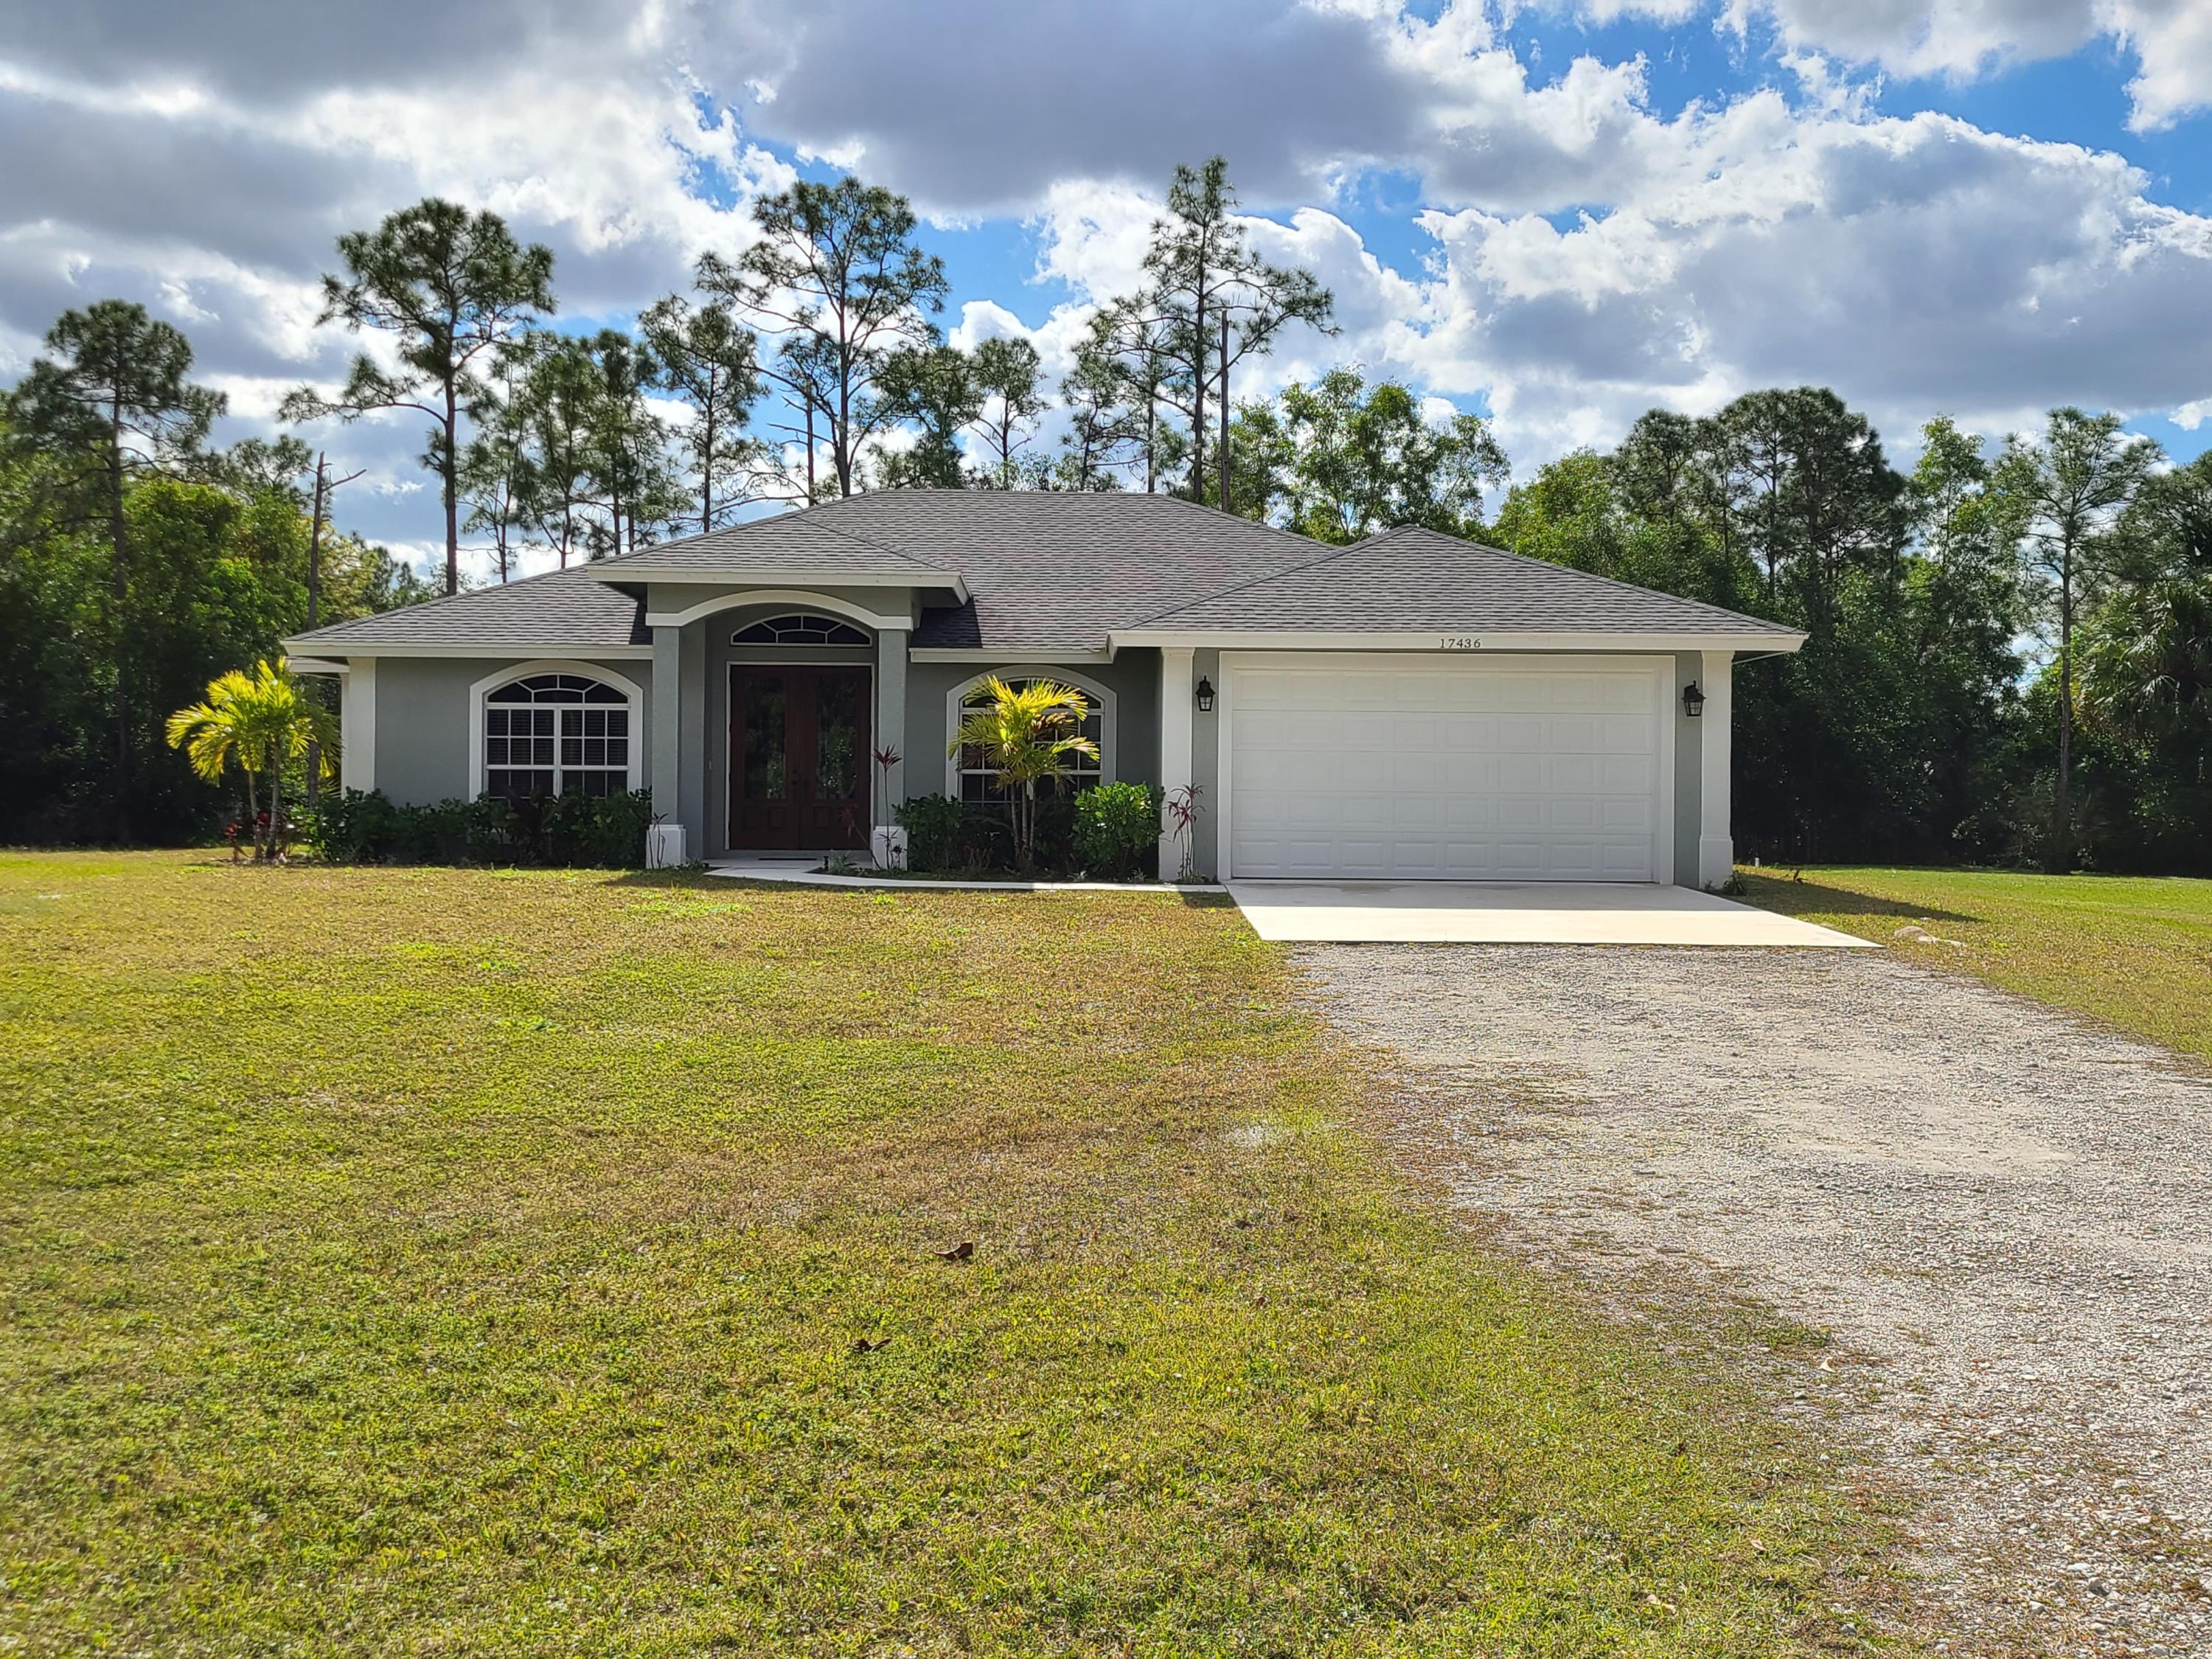 17436 91st Place The Acreage, FL 33470 small photo 1